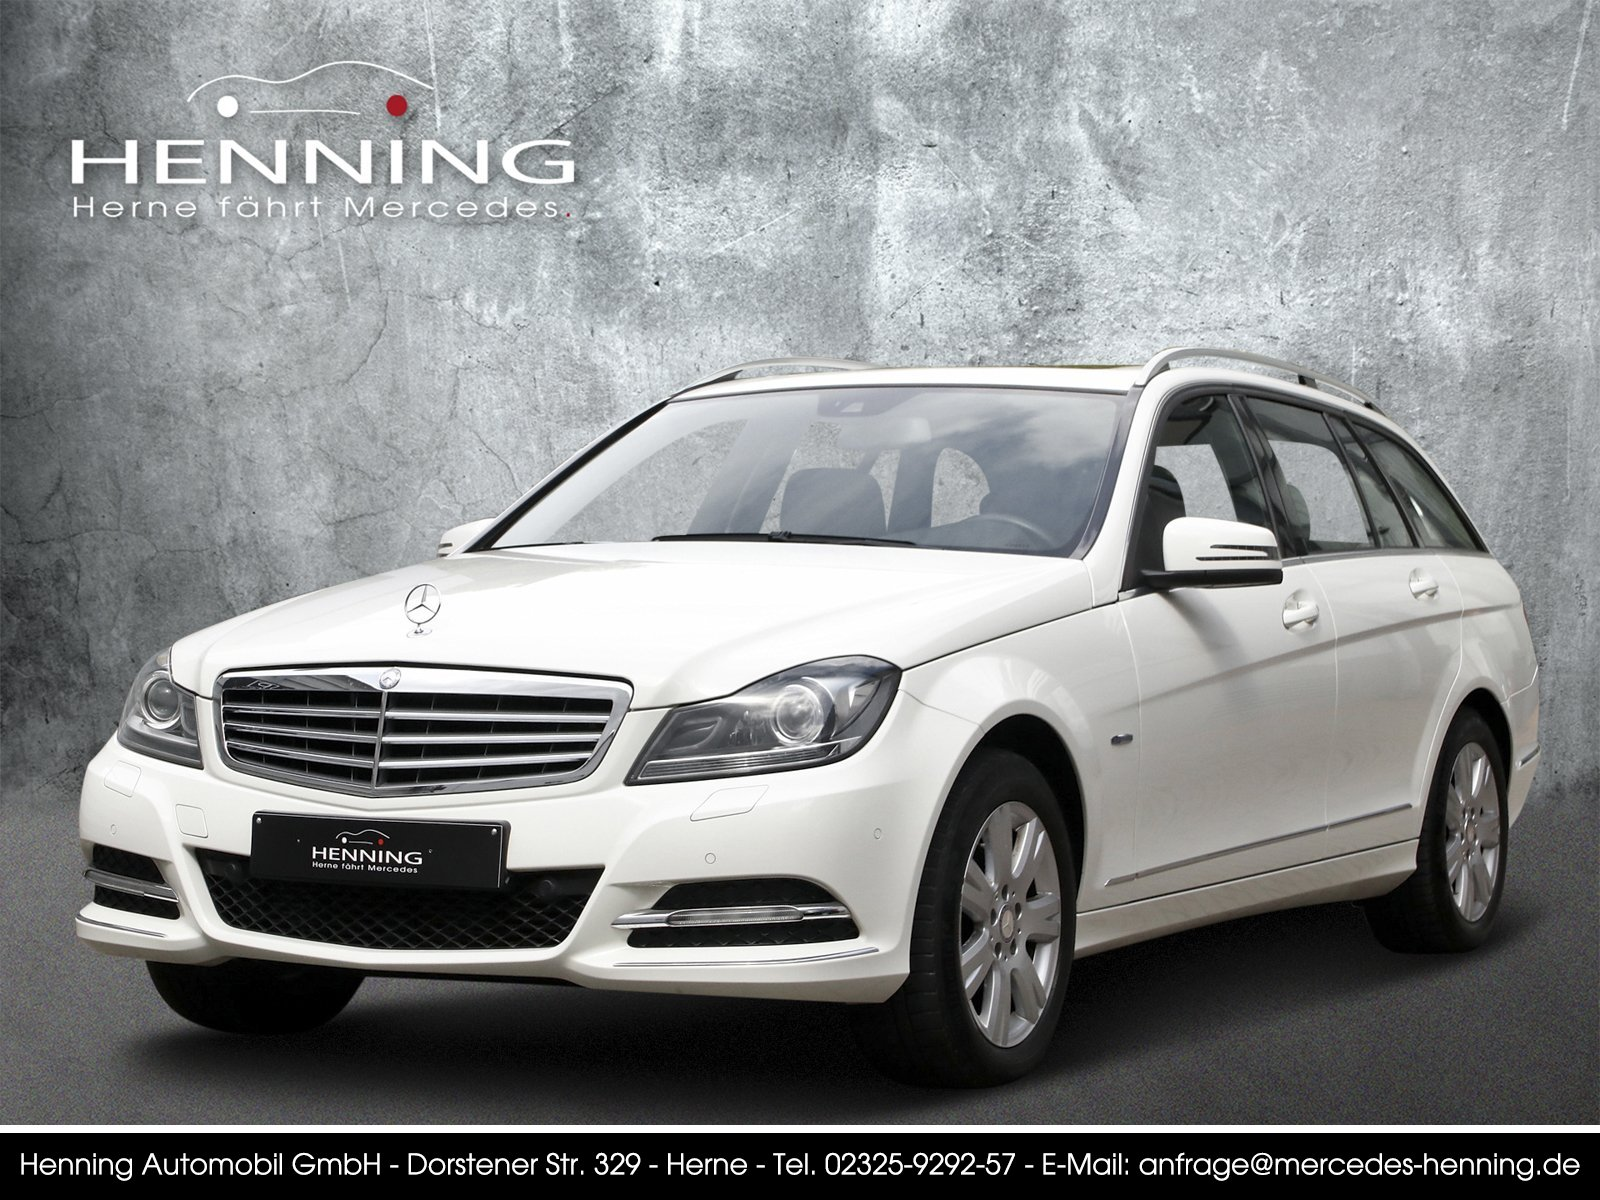 MERCEDES-BENZ C 200 BlueEFFICIENCY T-Modell